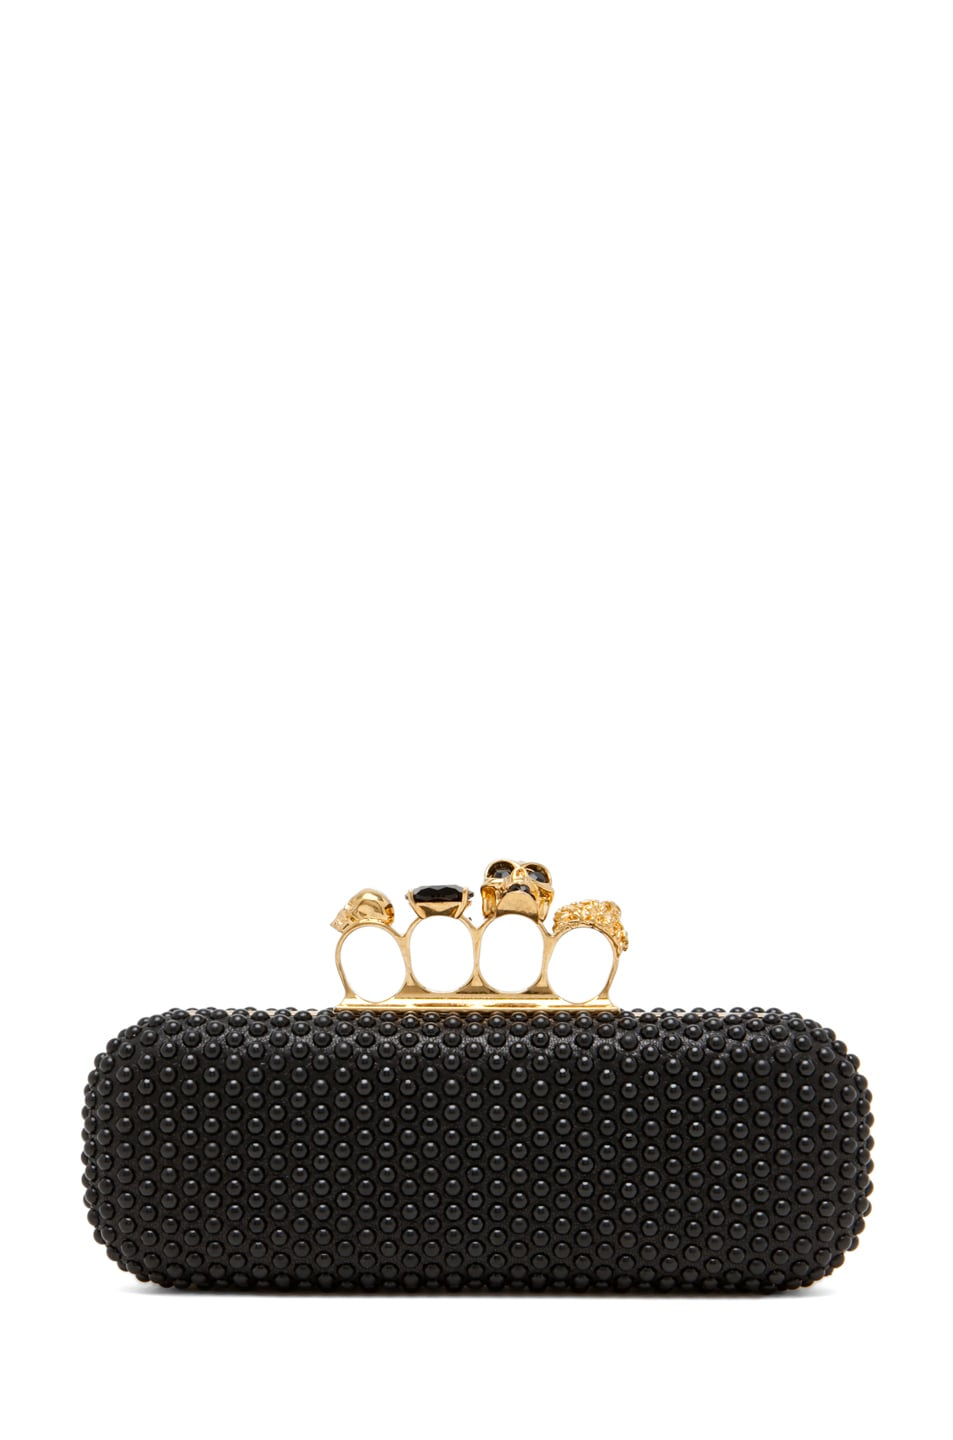 Image 1 of Alexander McQueen Knuckle Box Clutch in Black